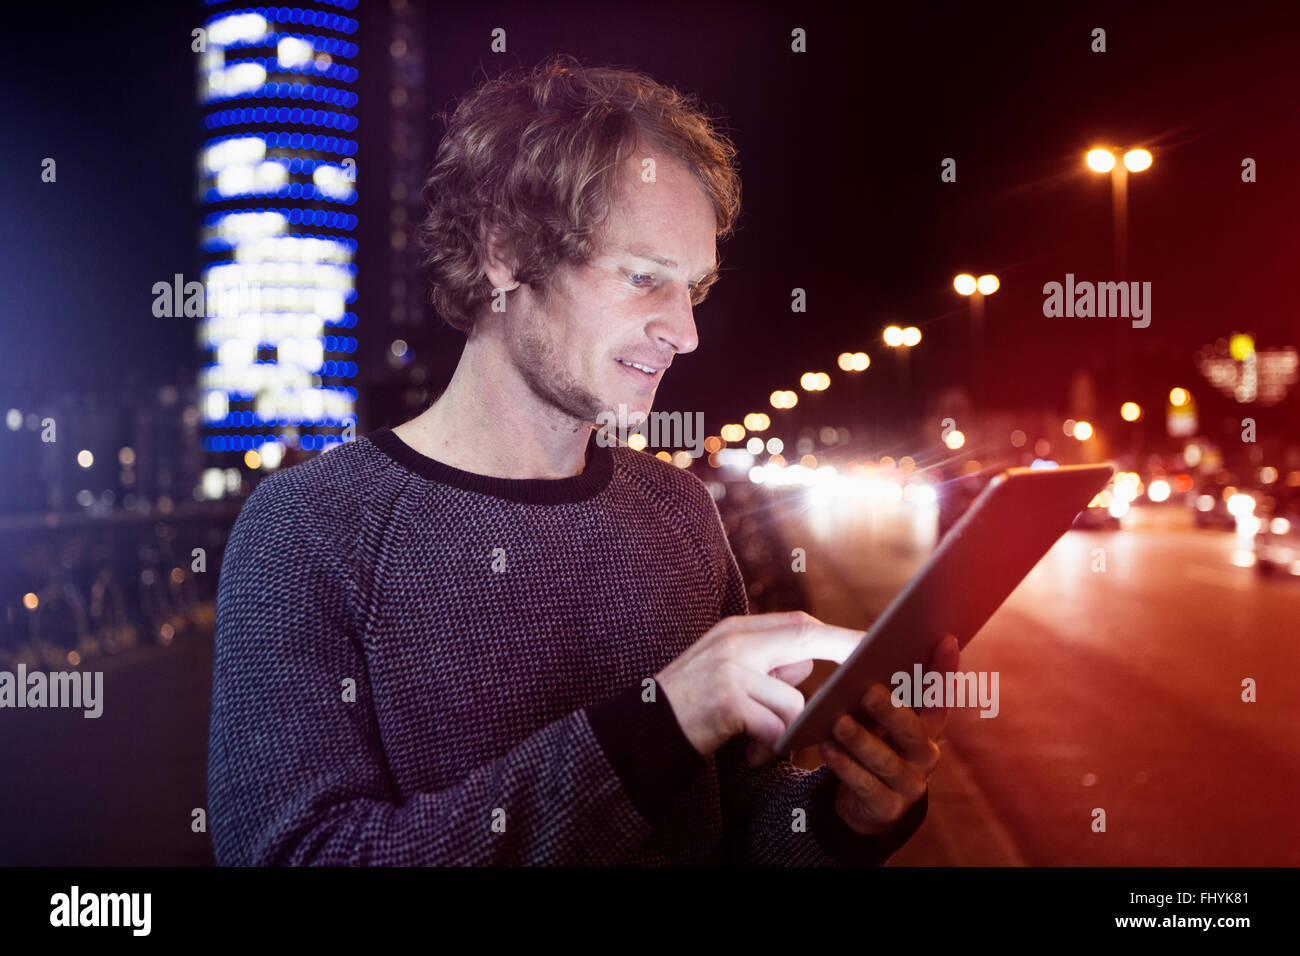 Germany, Munich, portrait of man using digital tablet at night - Stock Image